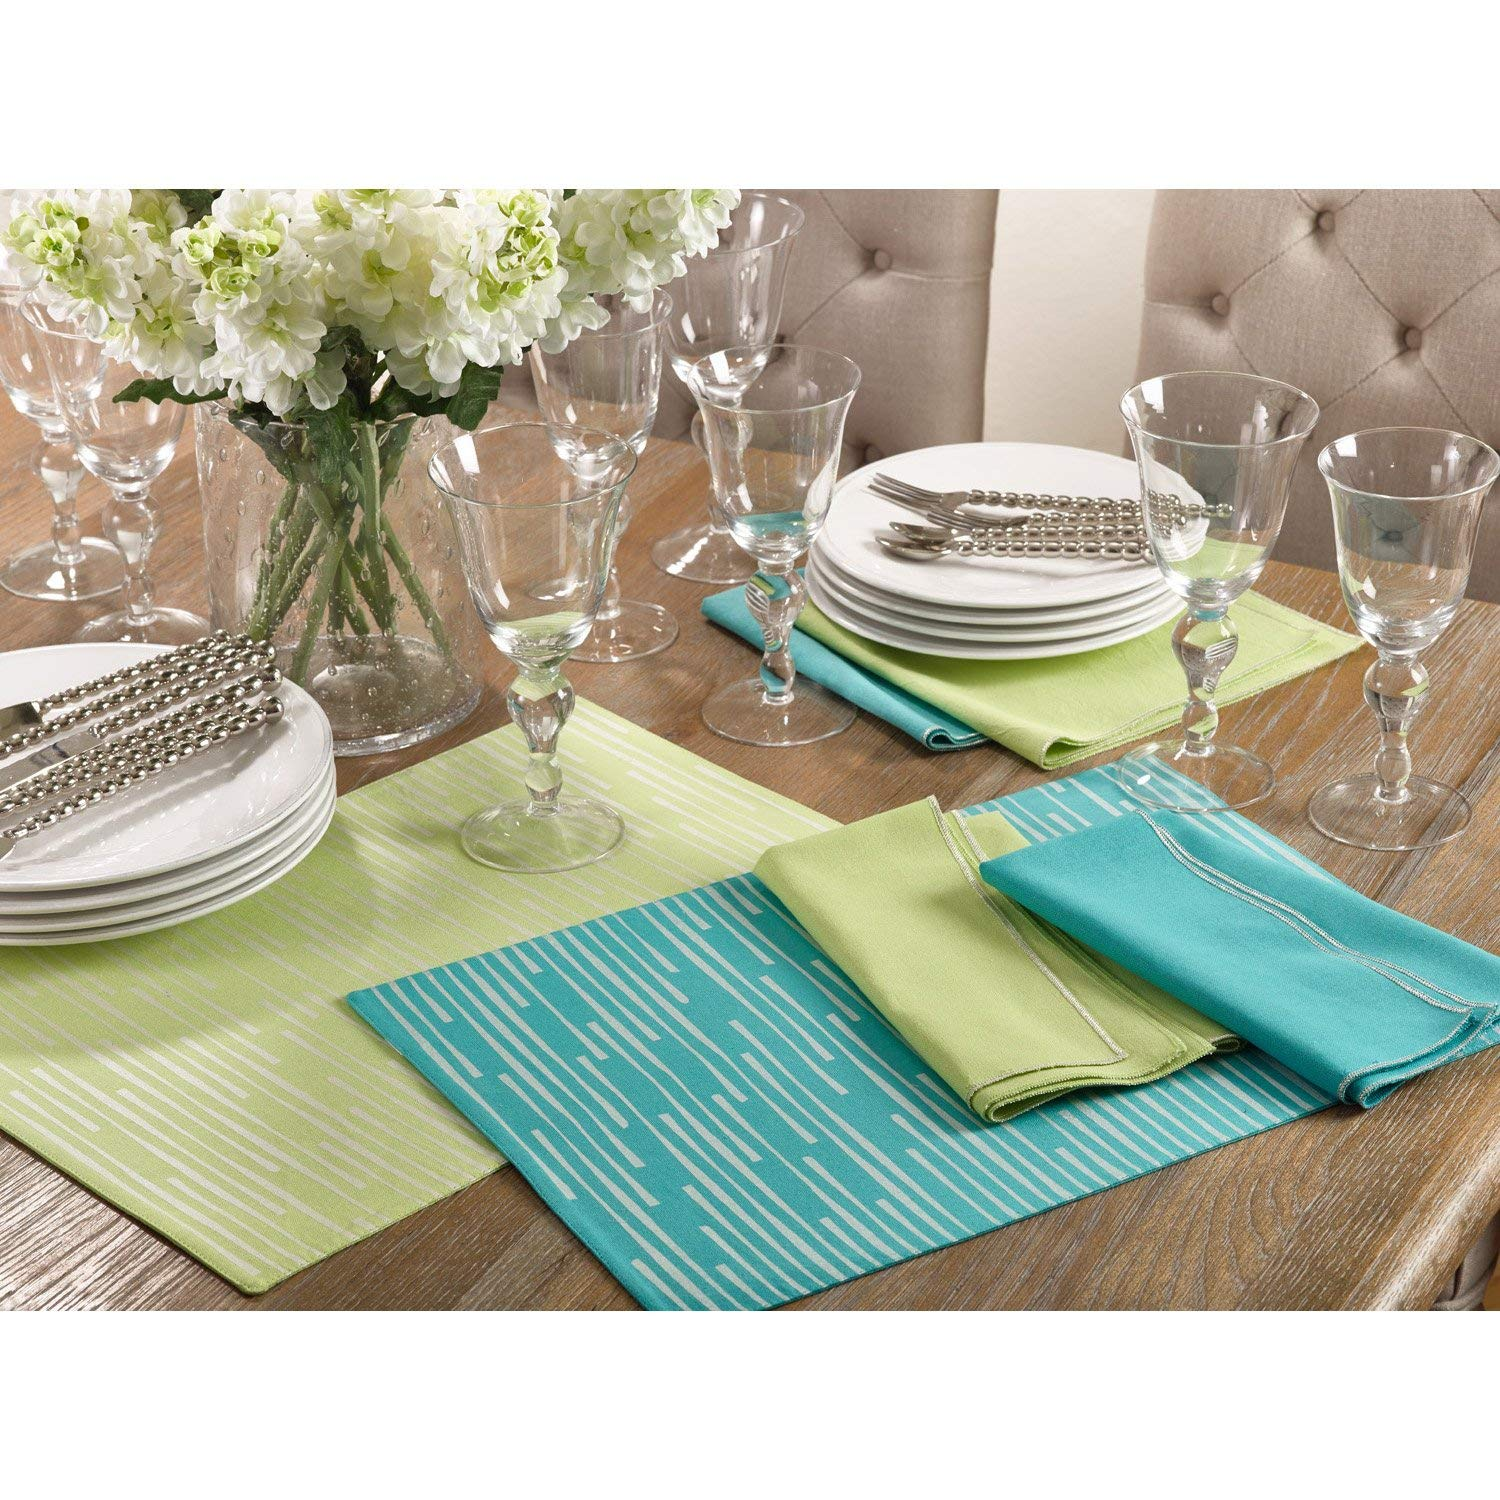 "Occasion Gallery Pistachio Color Printed Line Design Dining Placemat, 13""x19"" Rectangular (4 Piece)."